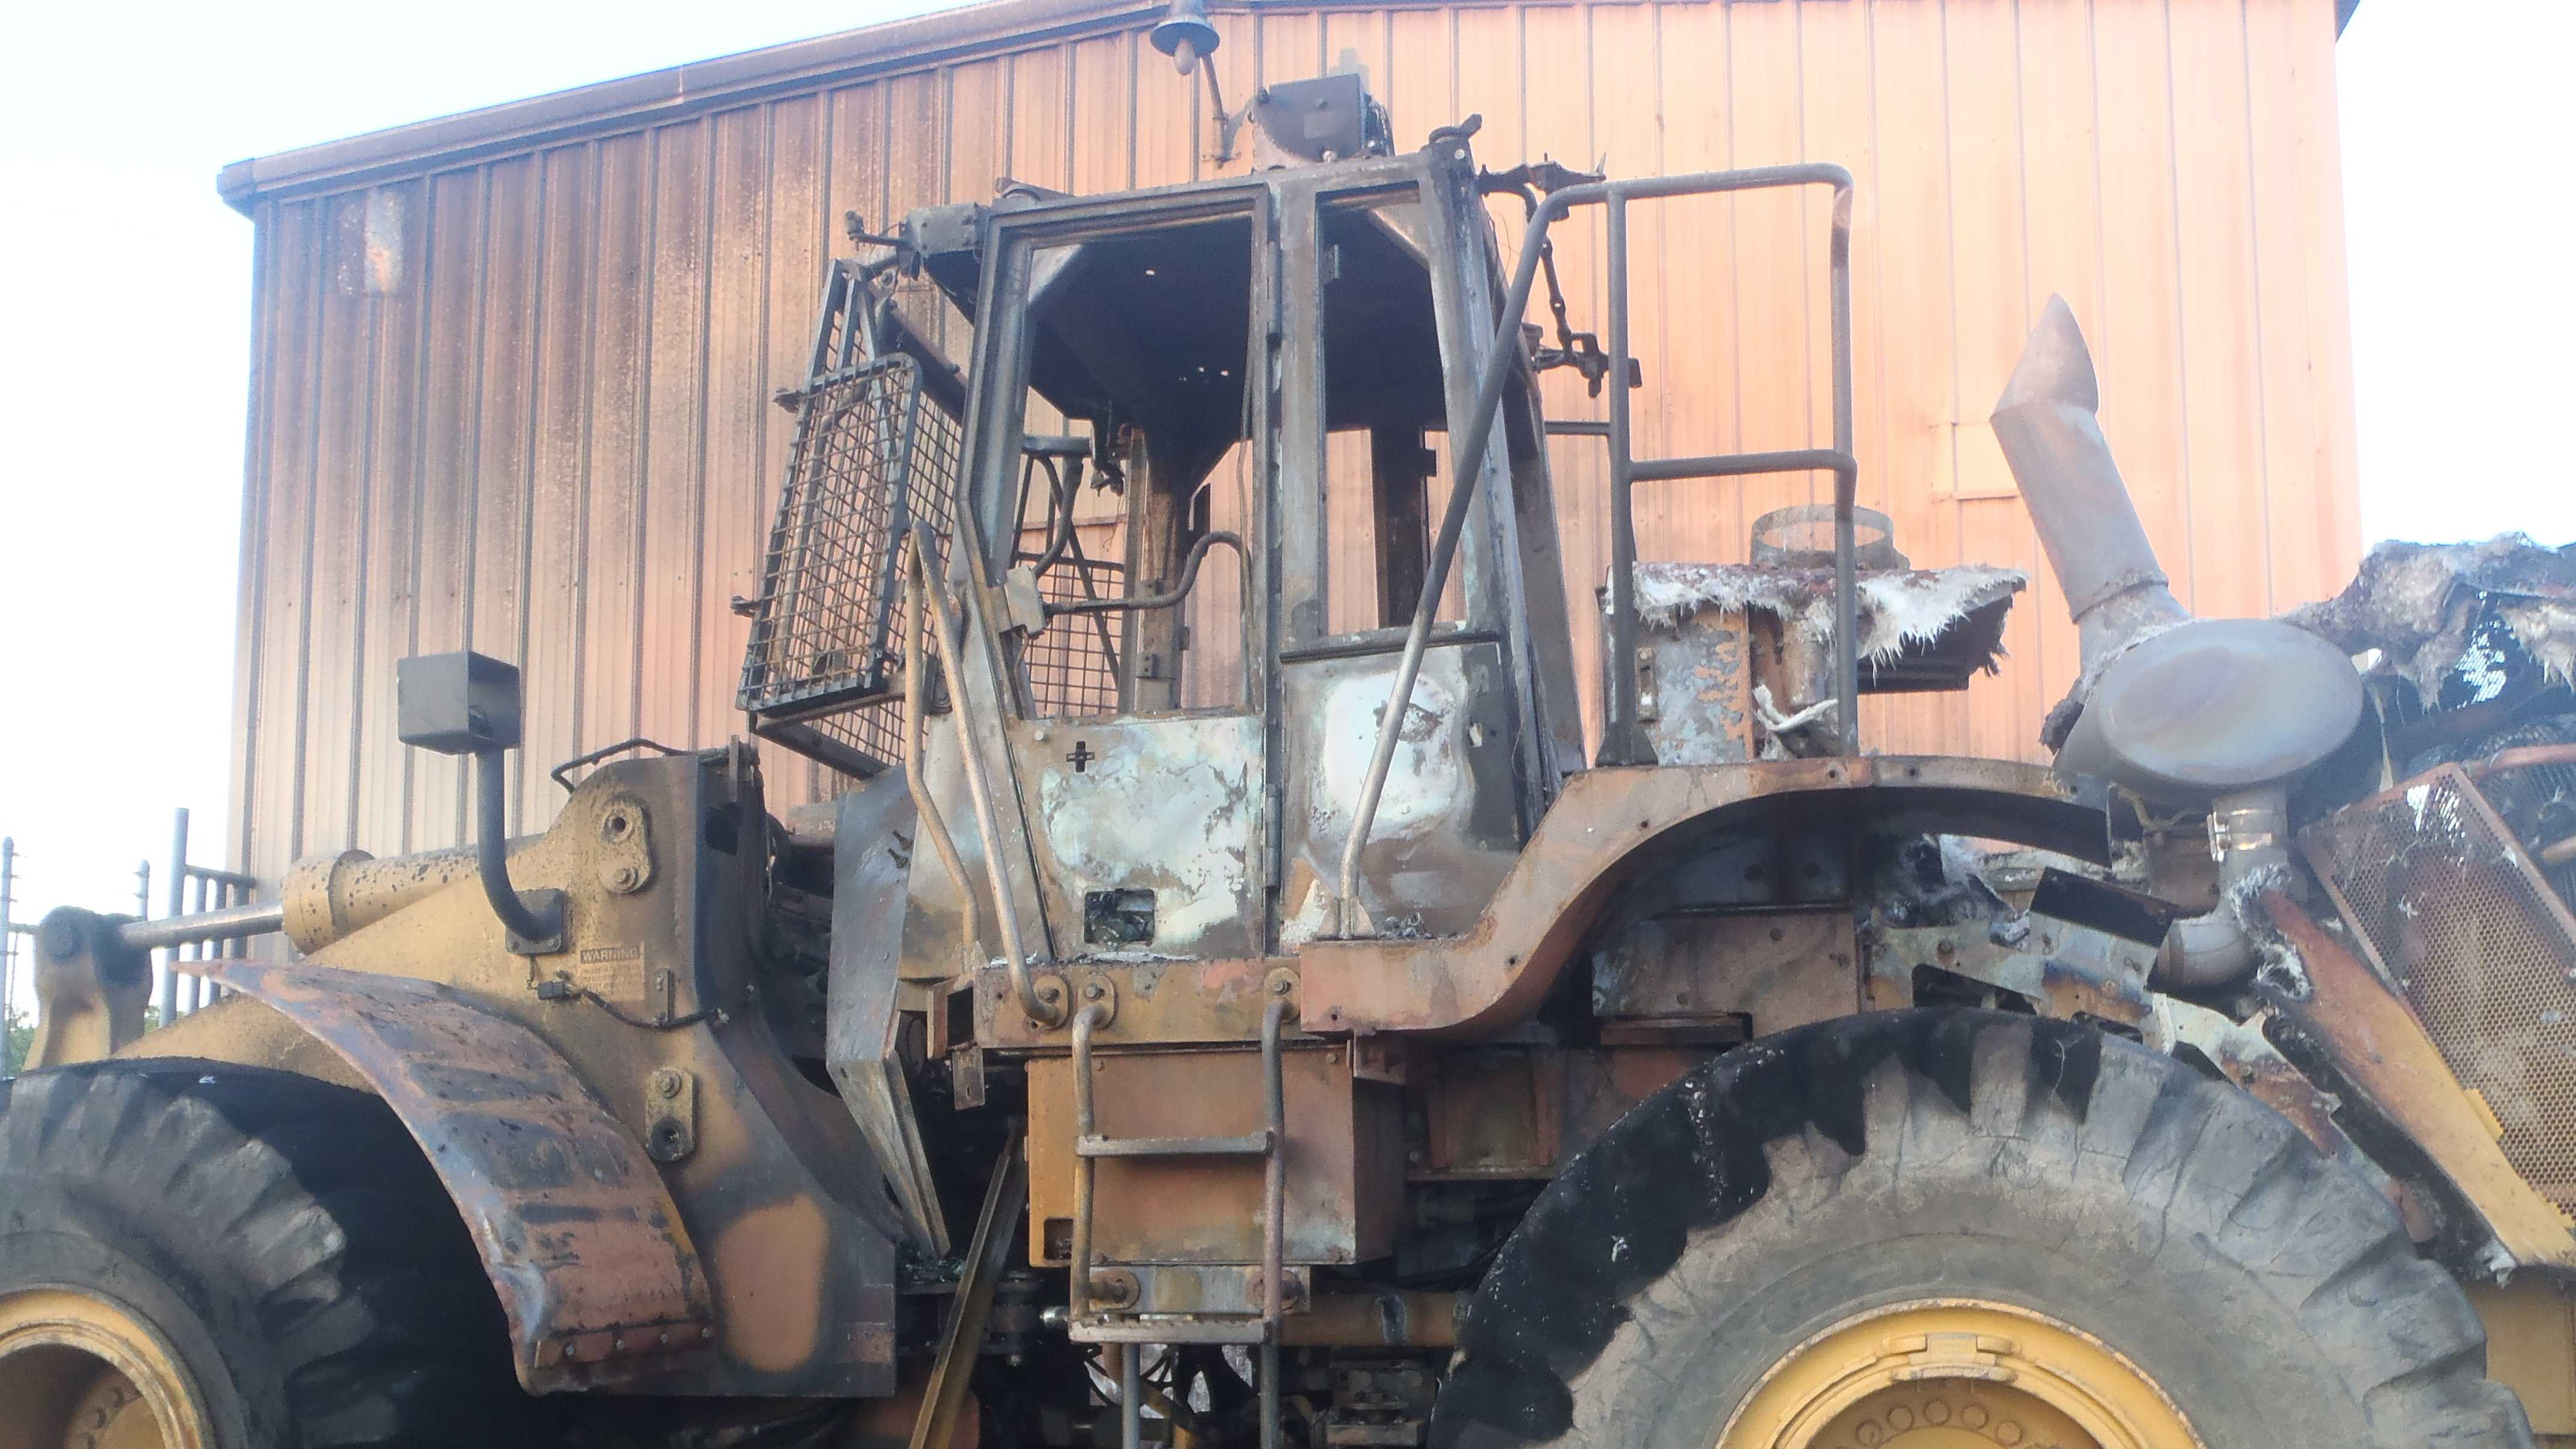 The front-end loader was destroyed in the fire.